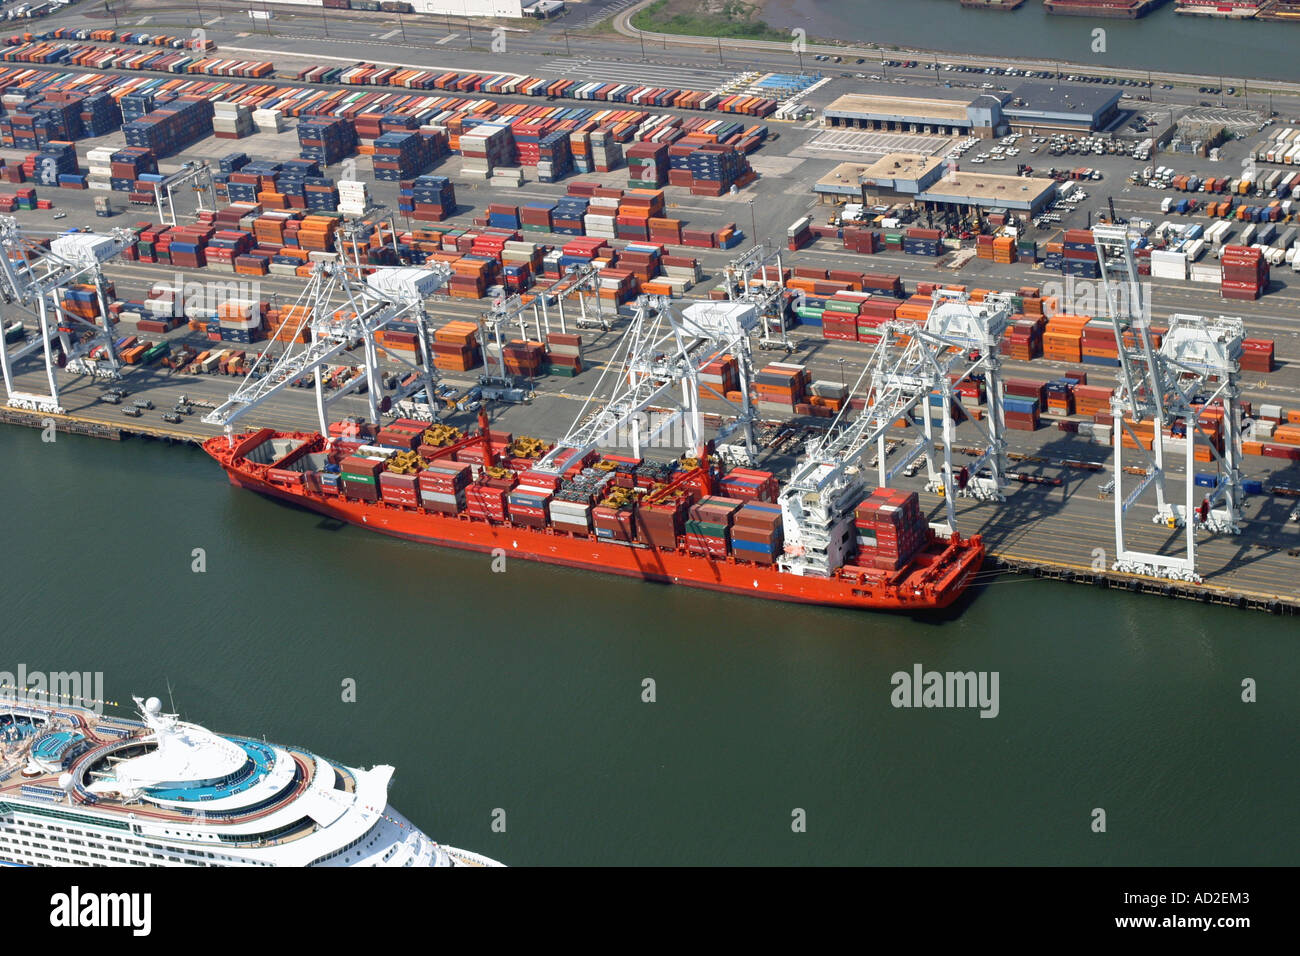 Aerial view of container ship docked at Bayonne, New Jersey, U.S.A. Stock Photo